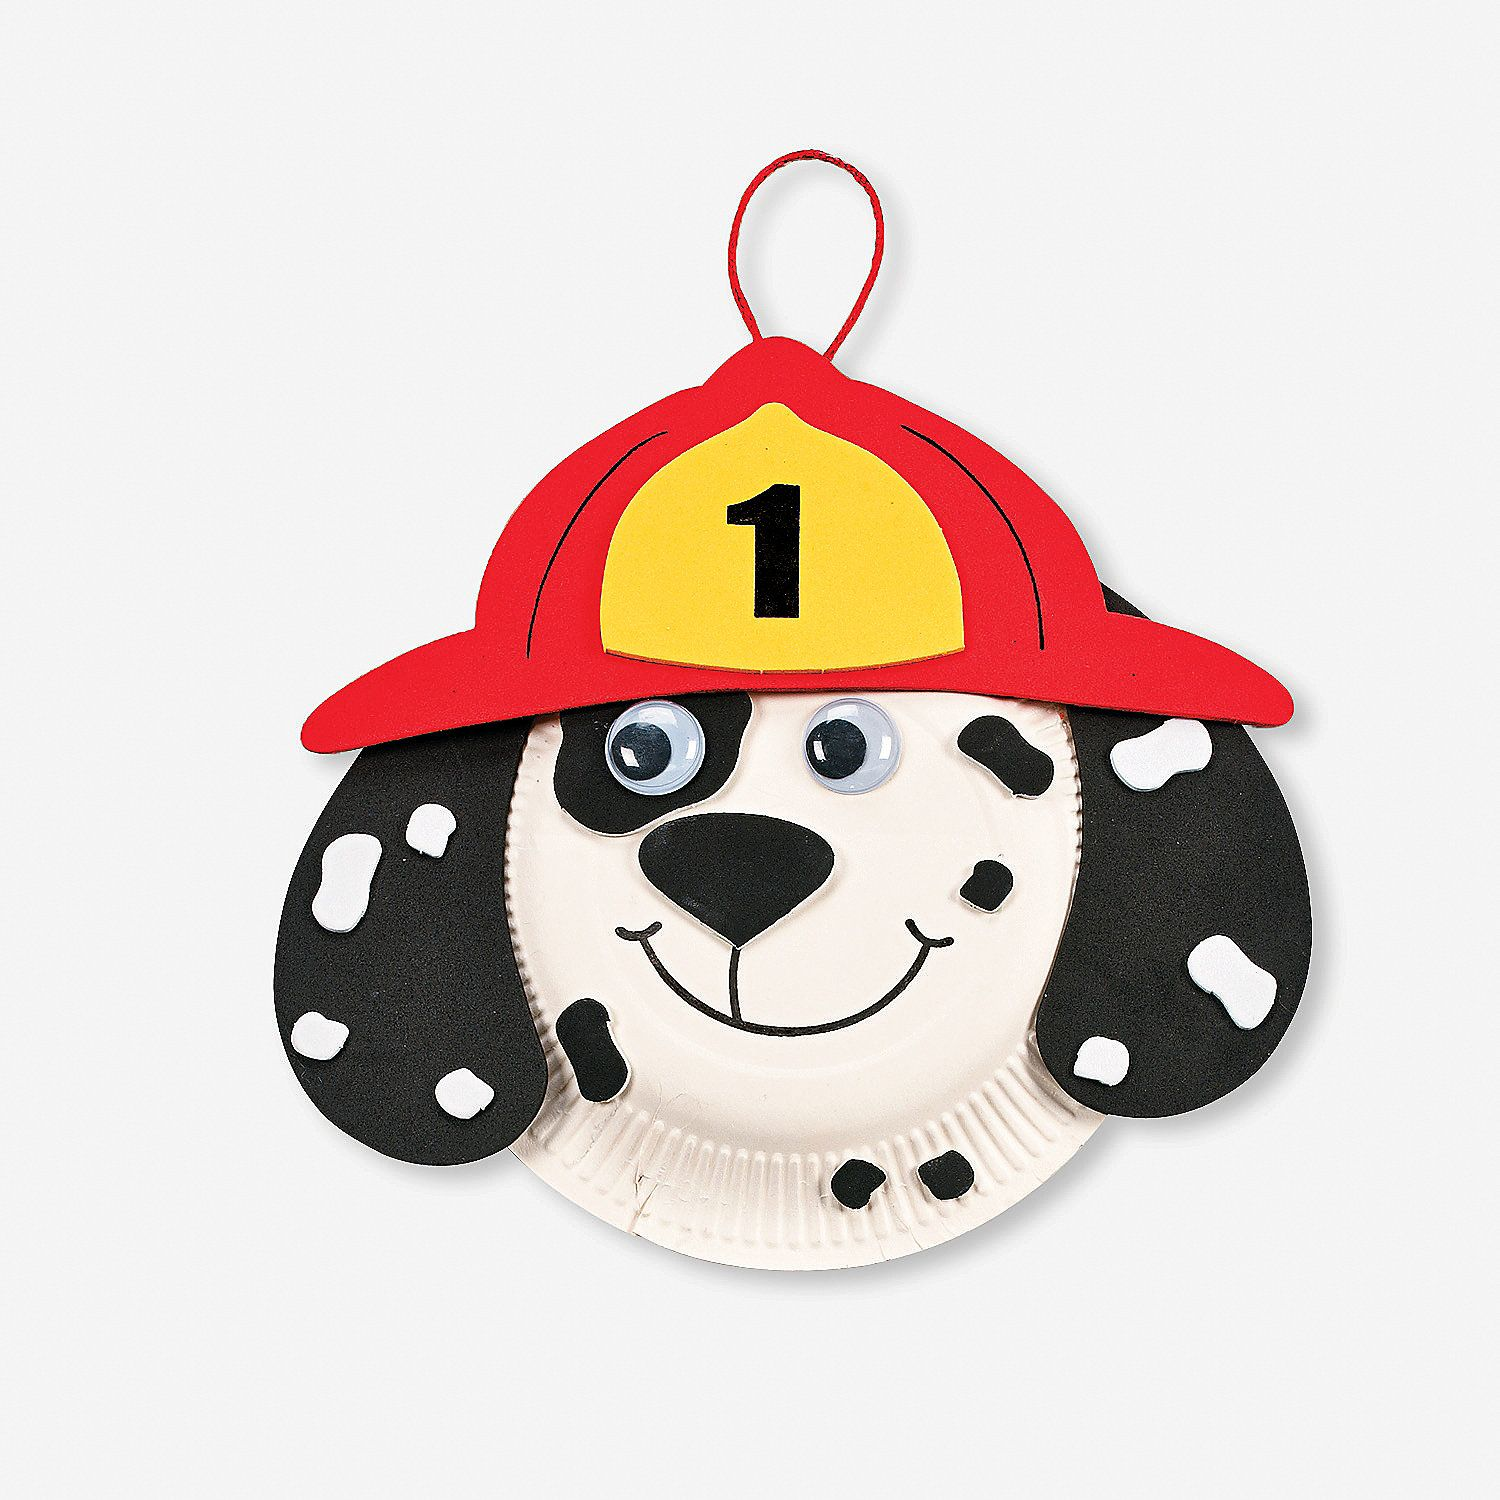 24 Dalmatian Fire Safety Paper Plate Craft Kits - OrientalTrading.com